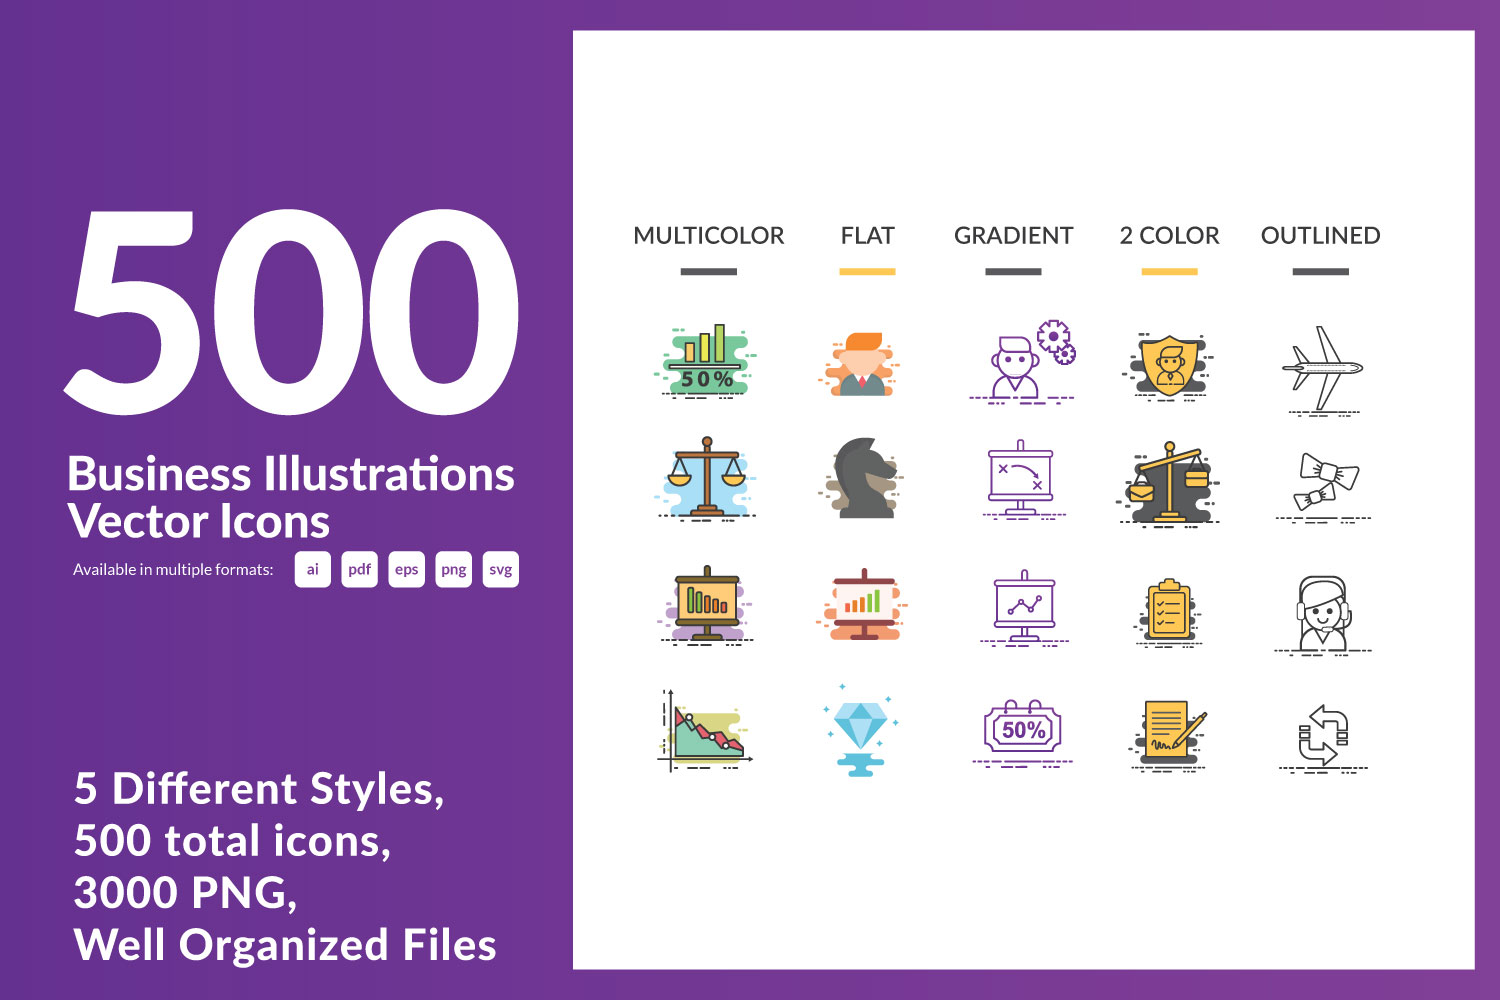 Download Free 500 Business Illustrations Vector Icons Graphic By Dendysign for Cricut Explore, Silhouette and other cutting machines.